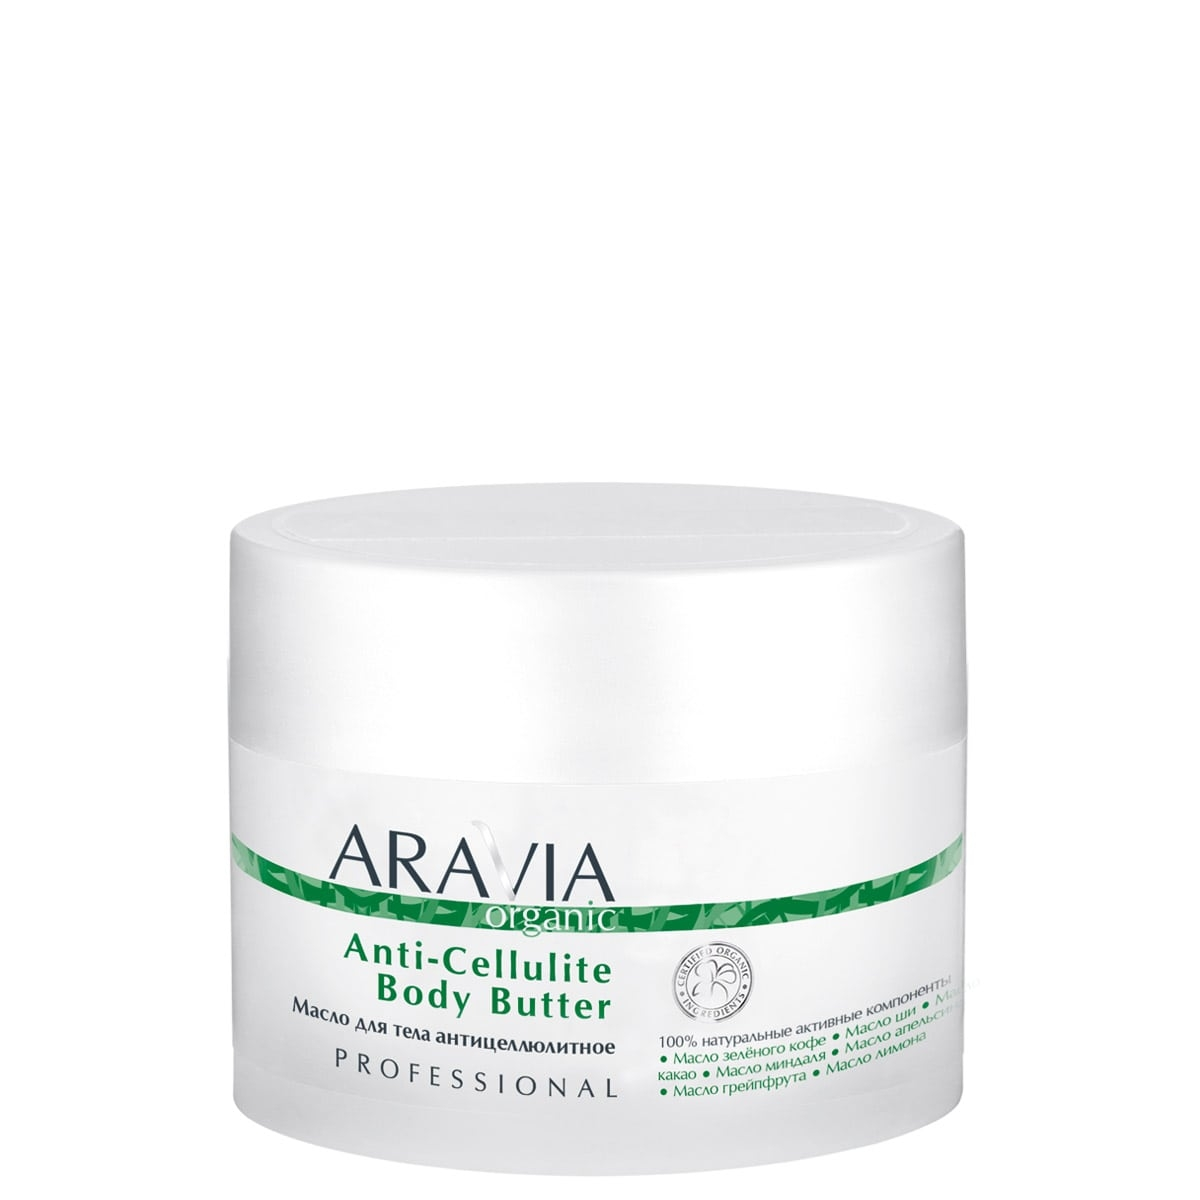 ARAVIA Масло Organic Anti-Cellulite Body Butter для Тела Антицеллюлитное, 150 мл fk xiang handheld body anti cellulite massage concave cell roller massager wheel foot hand body neck head pain relief